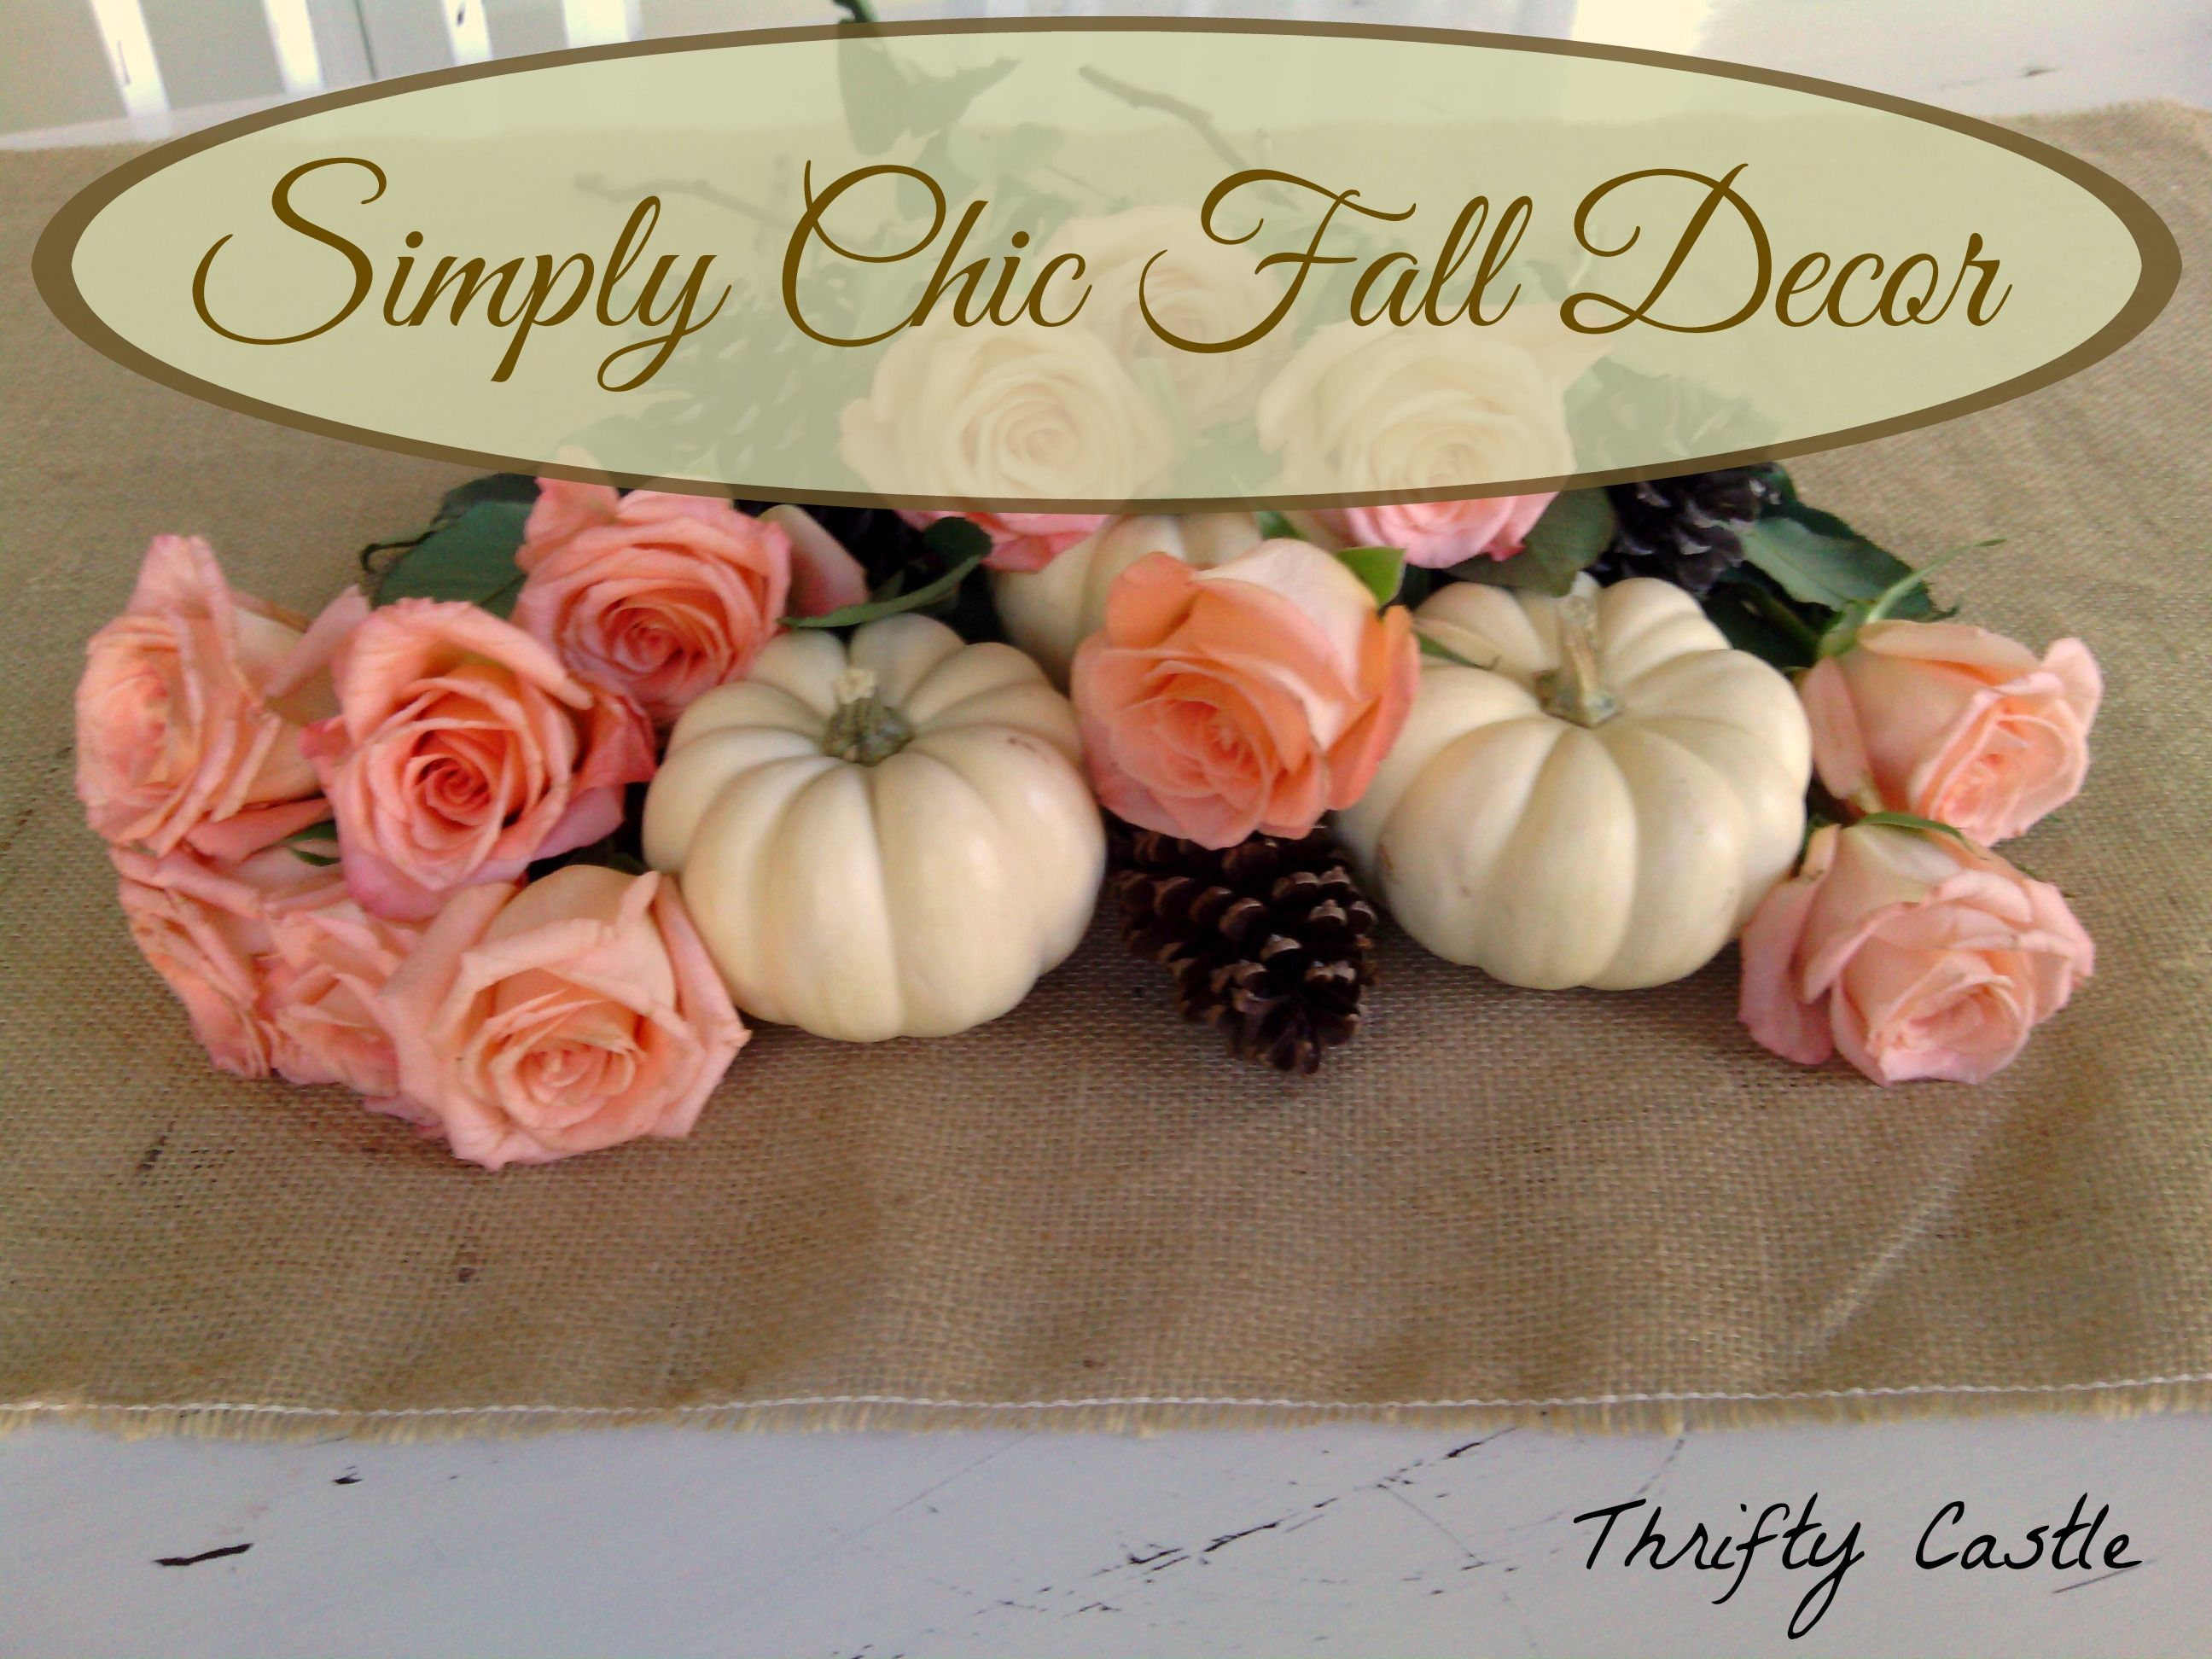 Simply Chic Fall Decor - pastels, roses, white pumpkins, and pine cones bring elegance to fall decor